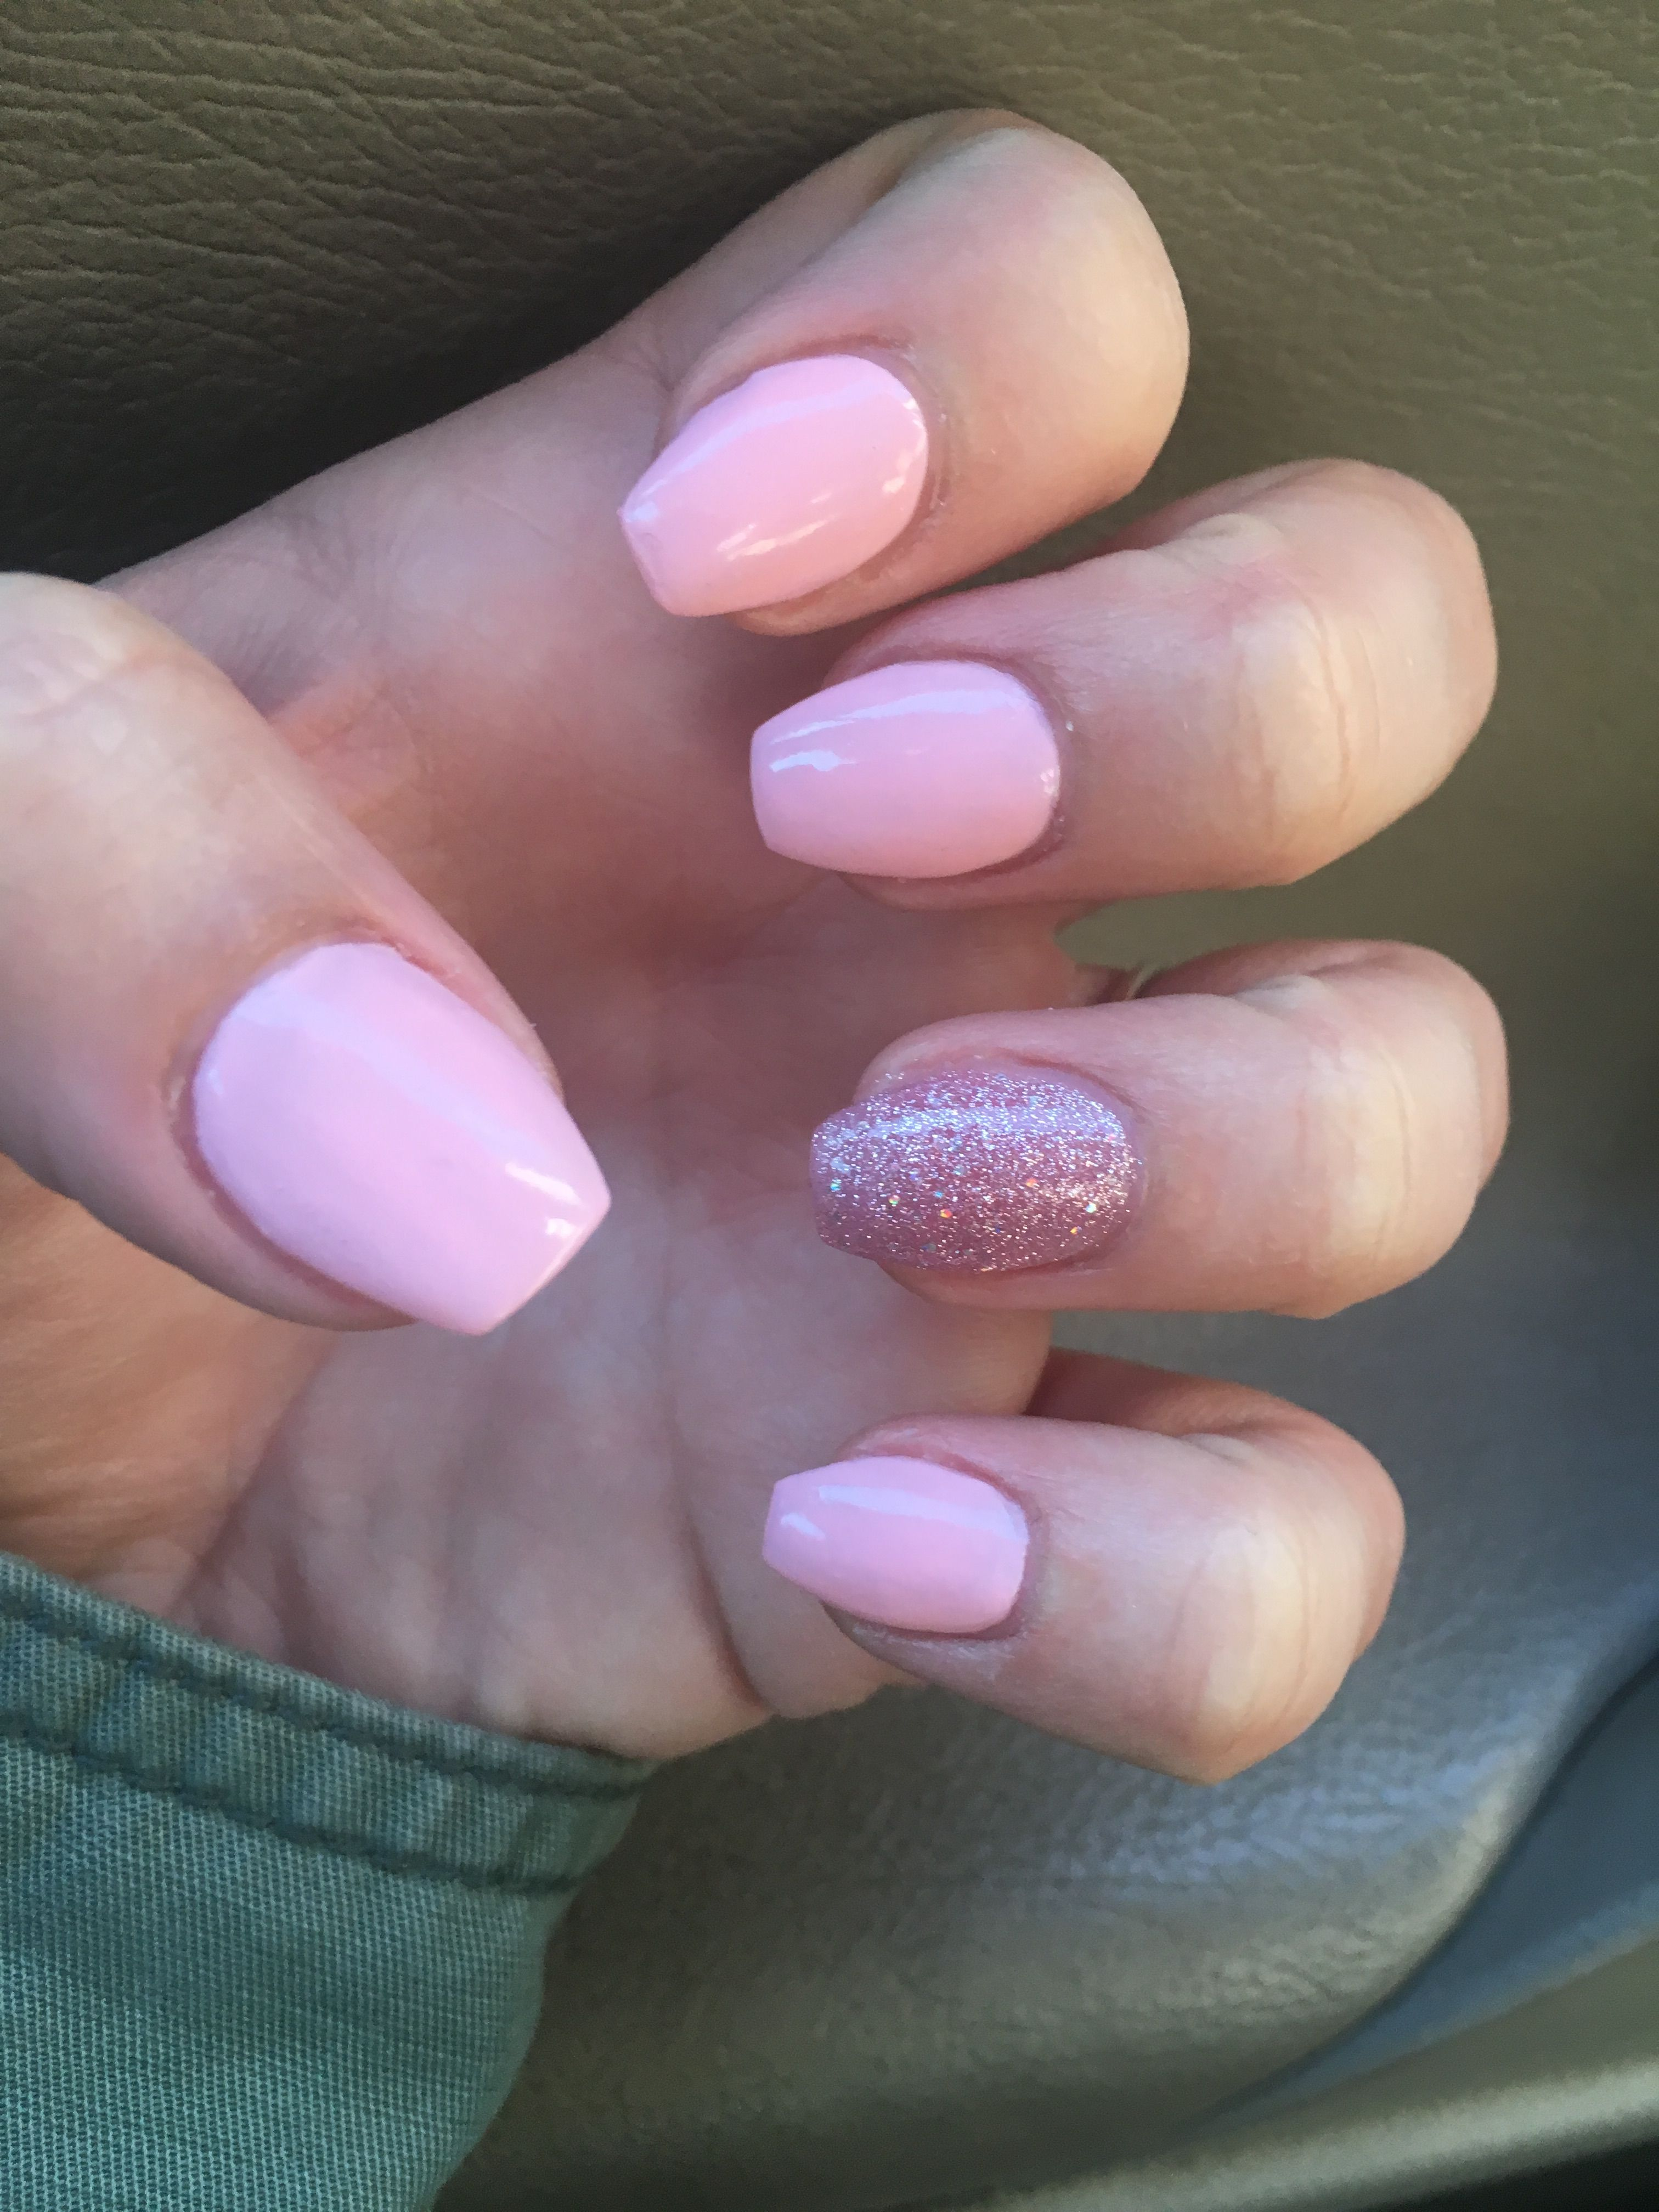 Opi Small Cute And Milani Pink Flare Short Coffin Nails Light Pink With Pink Glitter Short Coffin Nails Designs Pink Acrylic Nails Light Pink Acrylic Nails